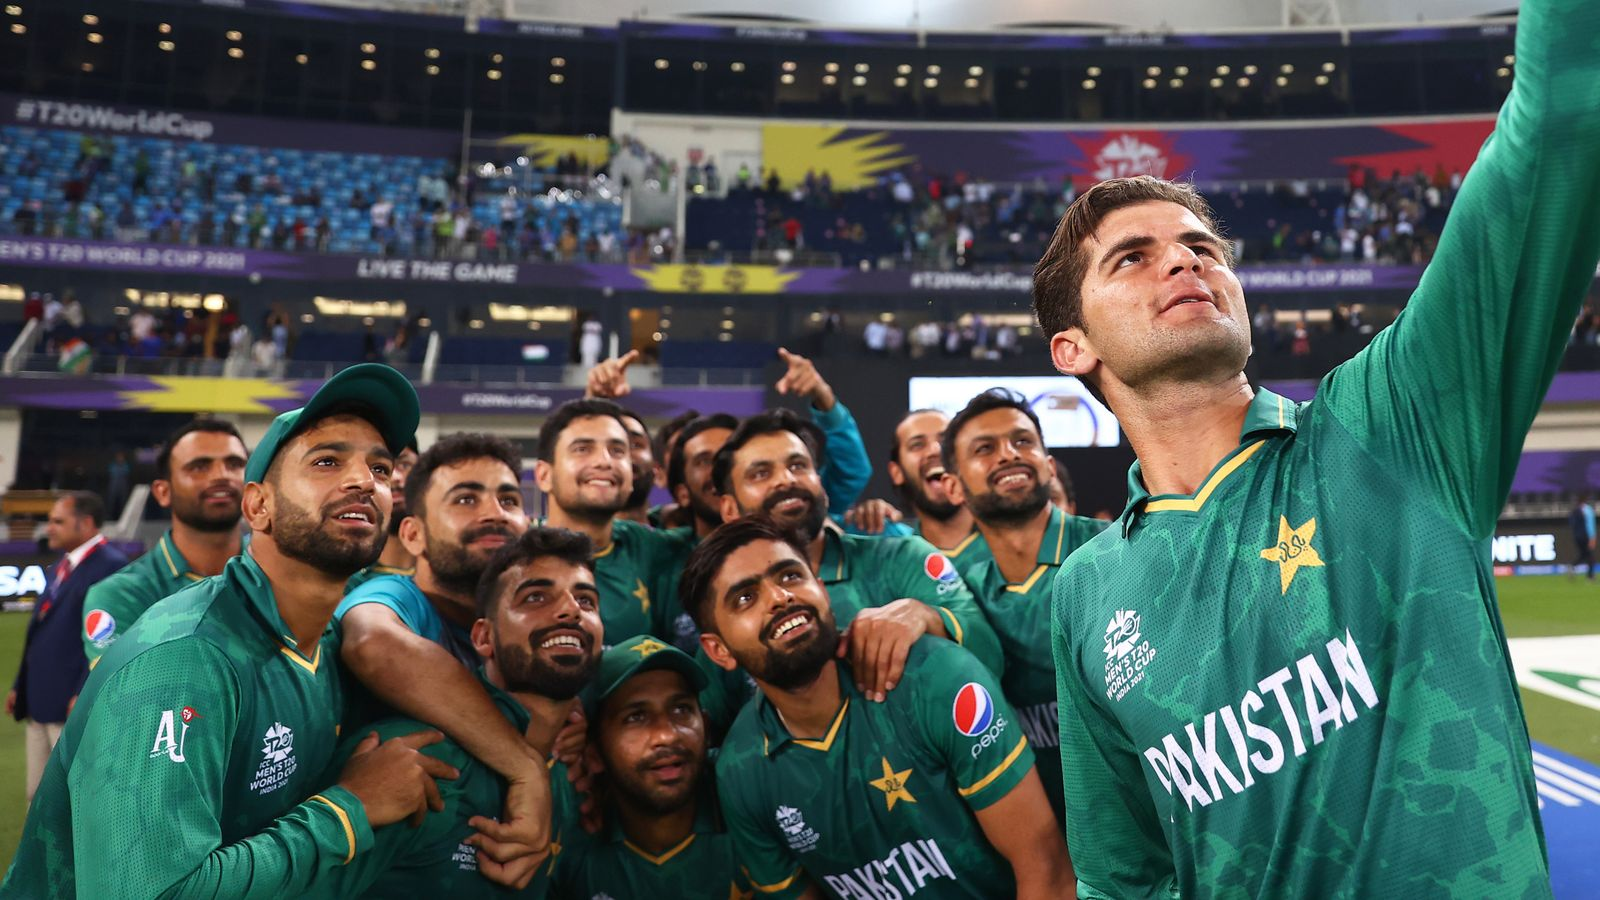 T20 World Cup: Pakistan motivated by aborted England New Zealand tours, believes Michael Atherton